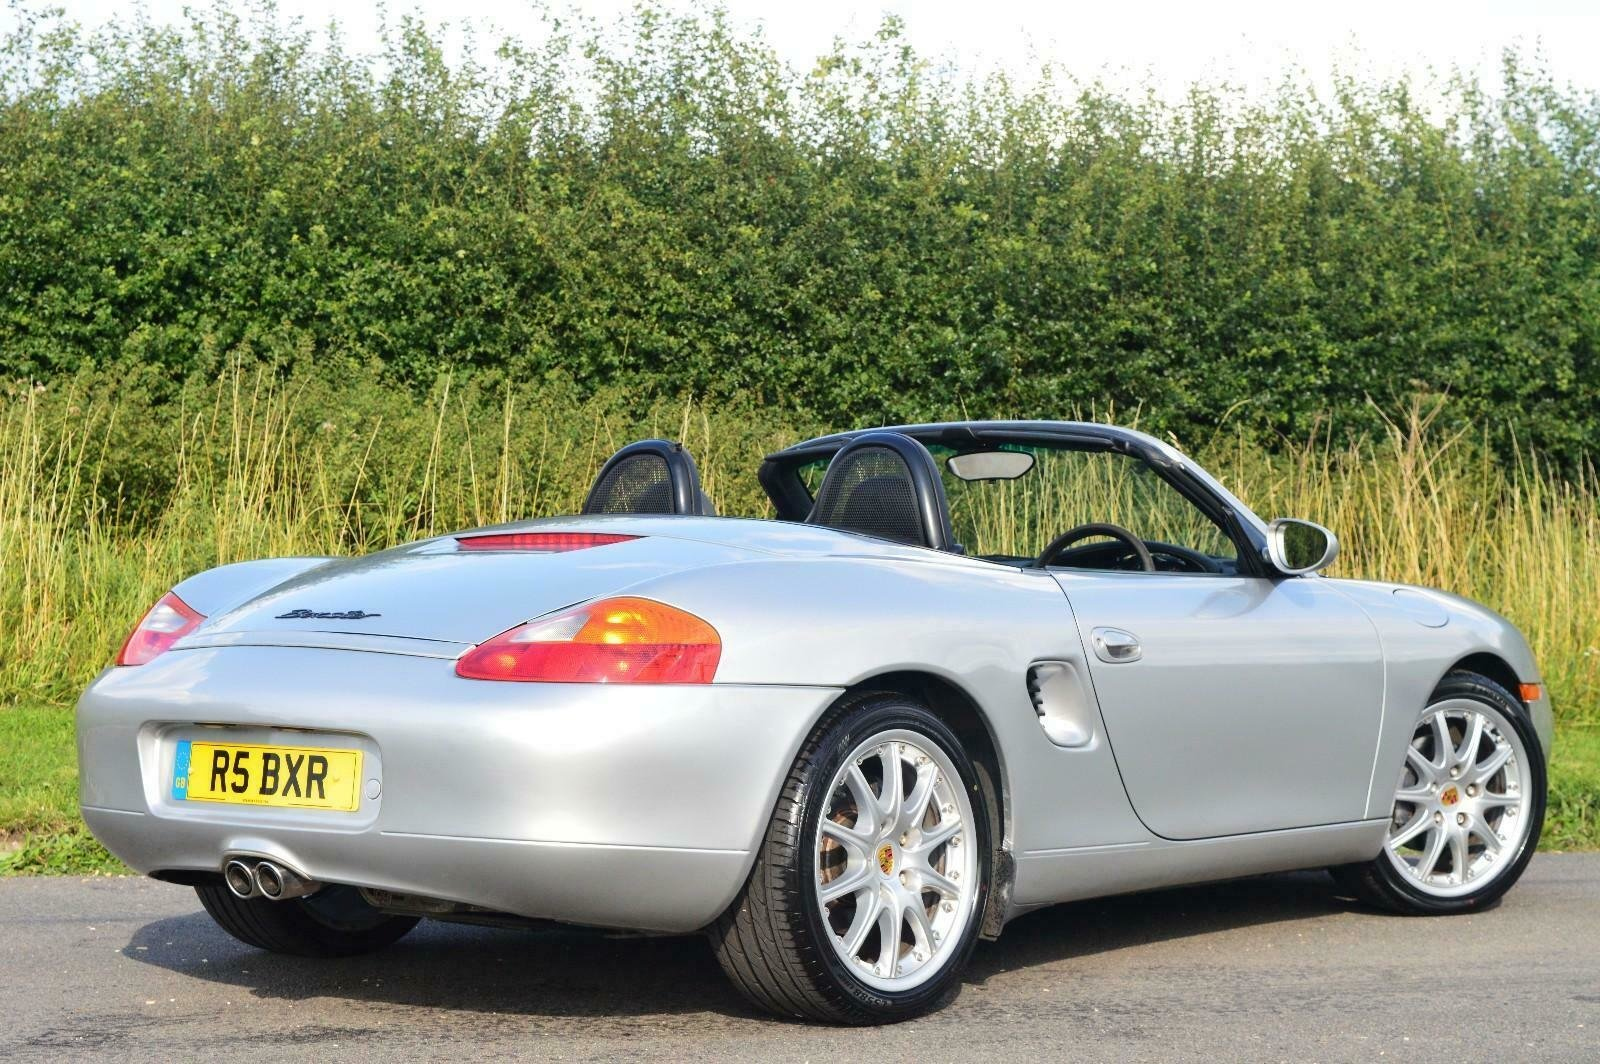 1998 Porsche Boxster 986 2.5 Manual Petrol Convertible F.S.H SOLD (picture 5 of 6)